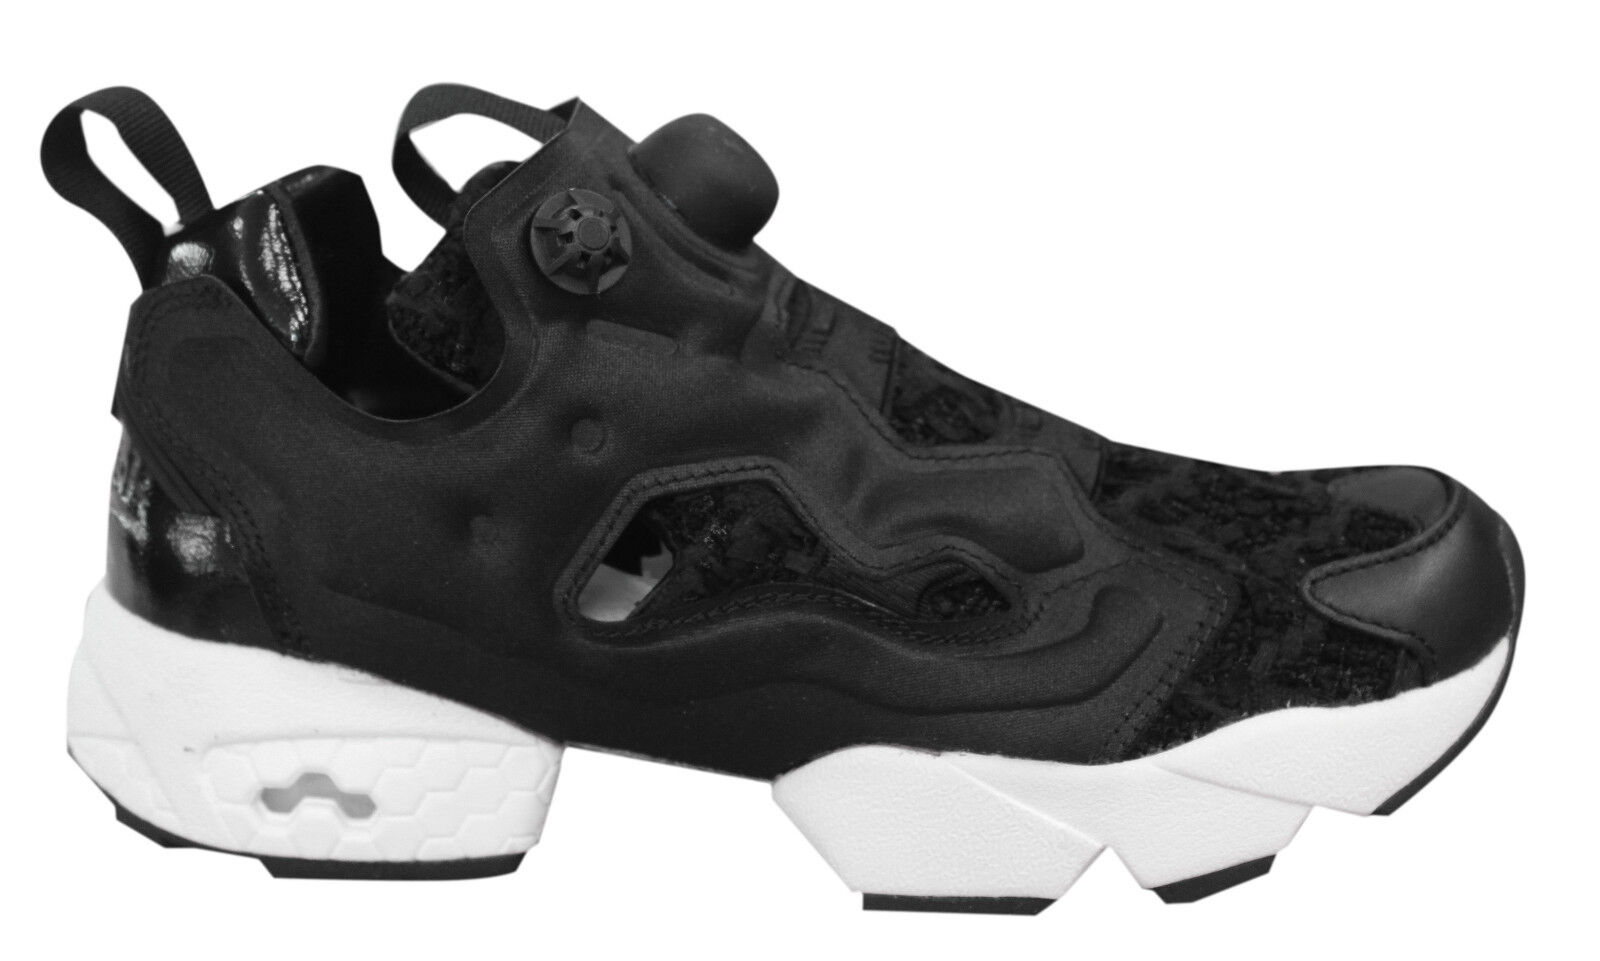 65e4f6374 Reebok Instapump Fury SC Womens Hi Trainers Mid Slip On Shoes Black ...